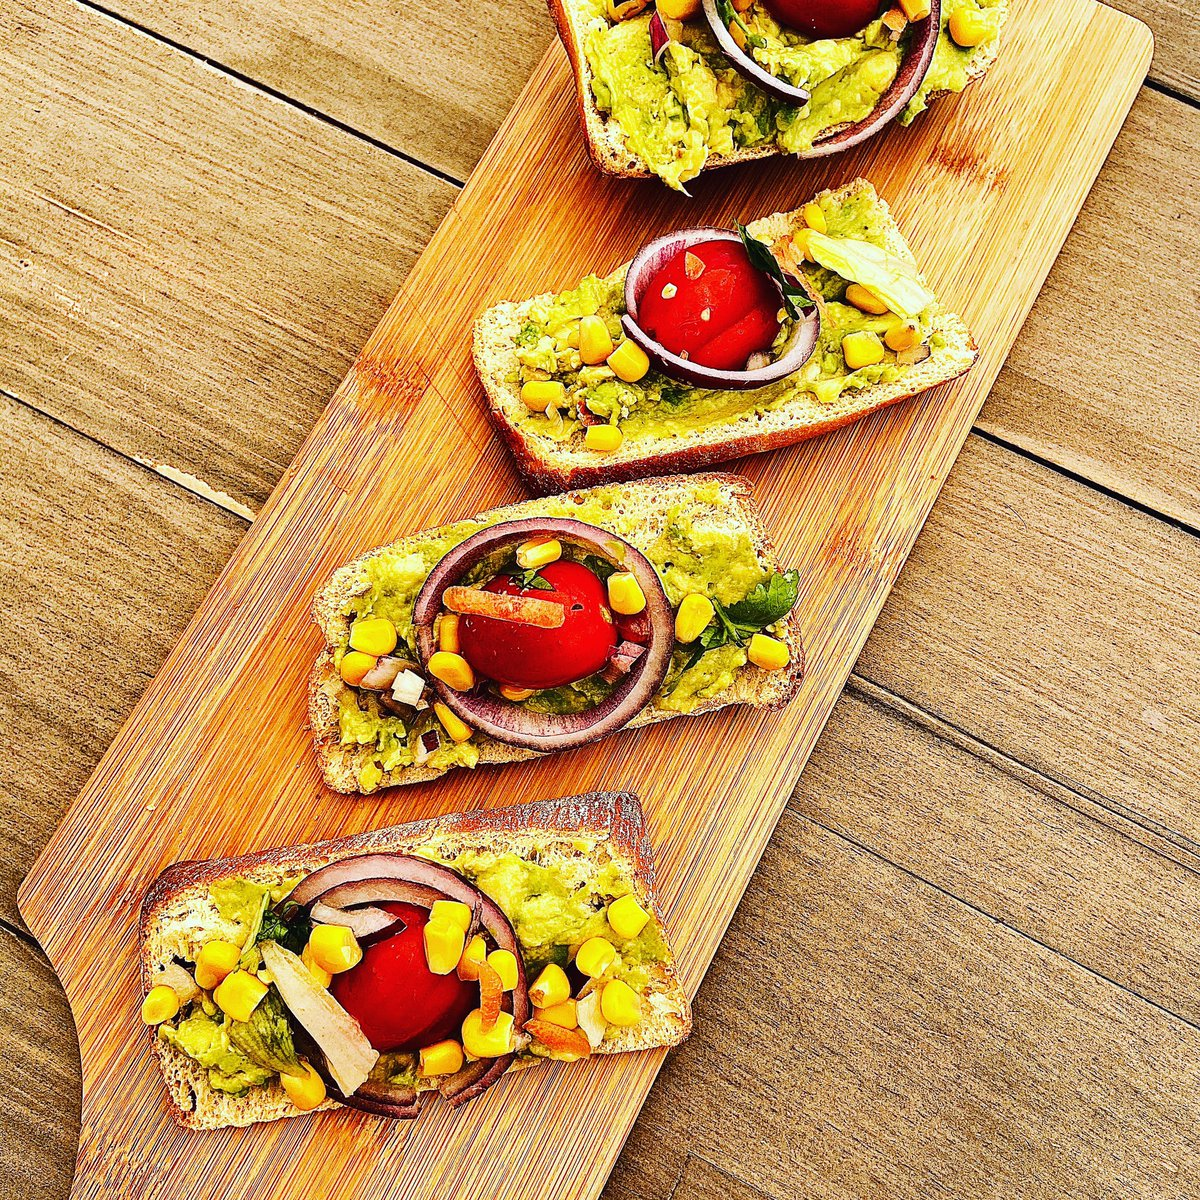 A little bit of lunch  avocado, corn, onions and tomatoes on warm sourdough bread #vegan #plantbased #veganfood #vegetarian #crueltyfree #healthyfood #glutenfree #food #organic #healthy #govegan #vegansofig #swansea #walespic.twitter.com/jG0p11DSJA